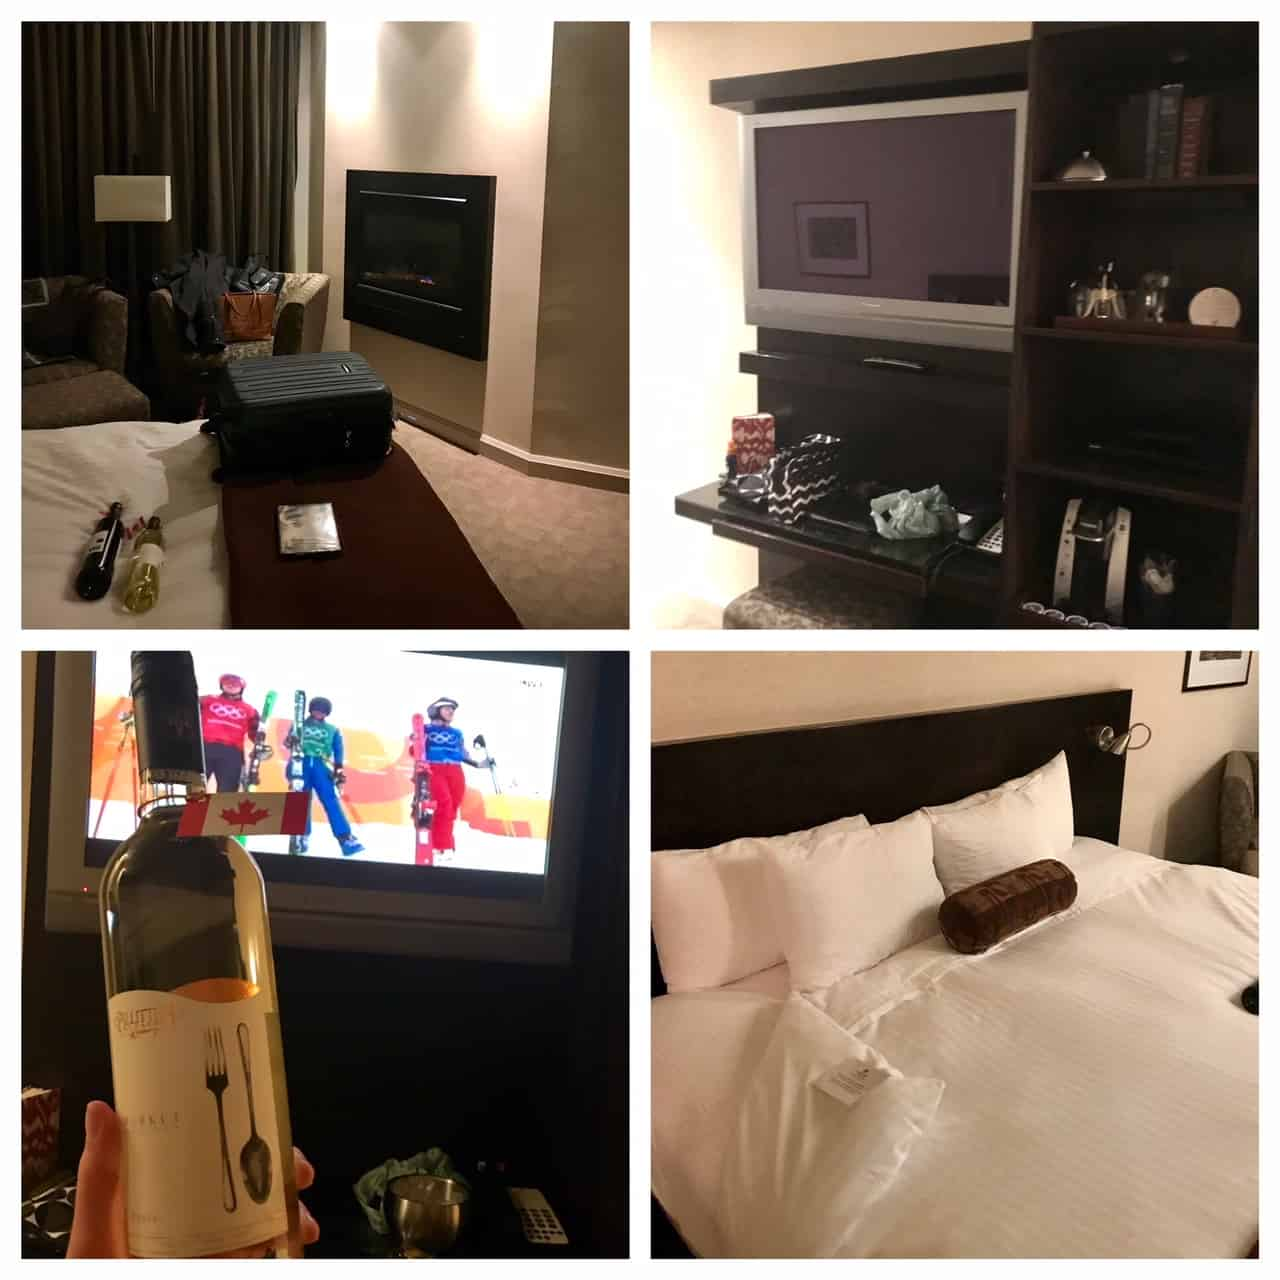 Collage of images from Shaw Club Hotel